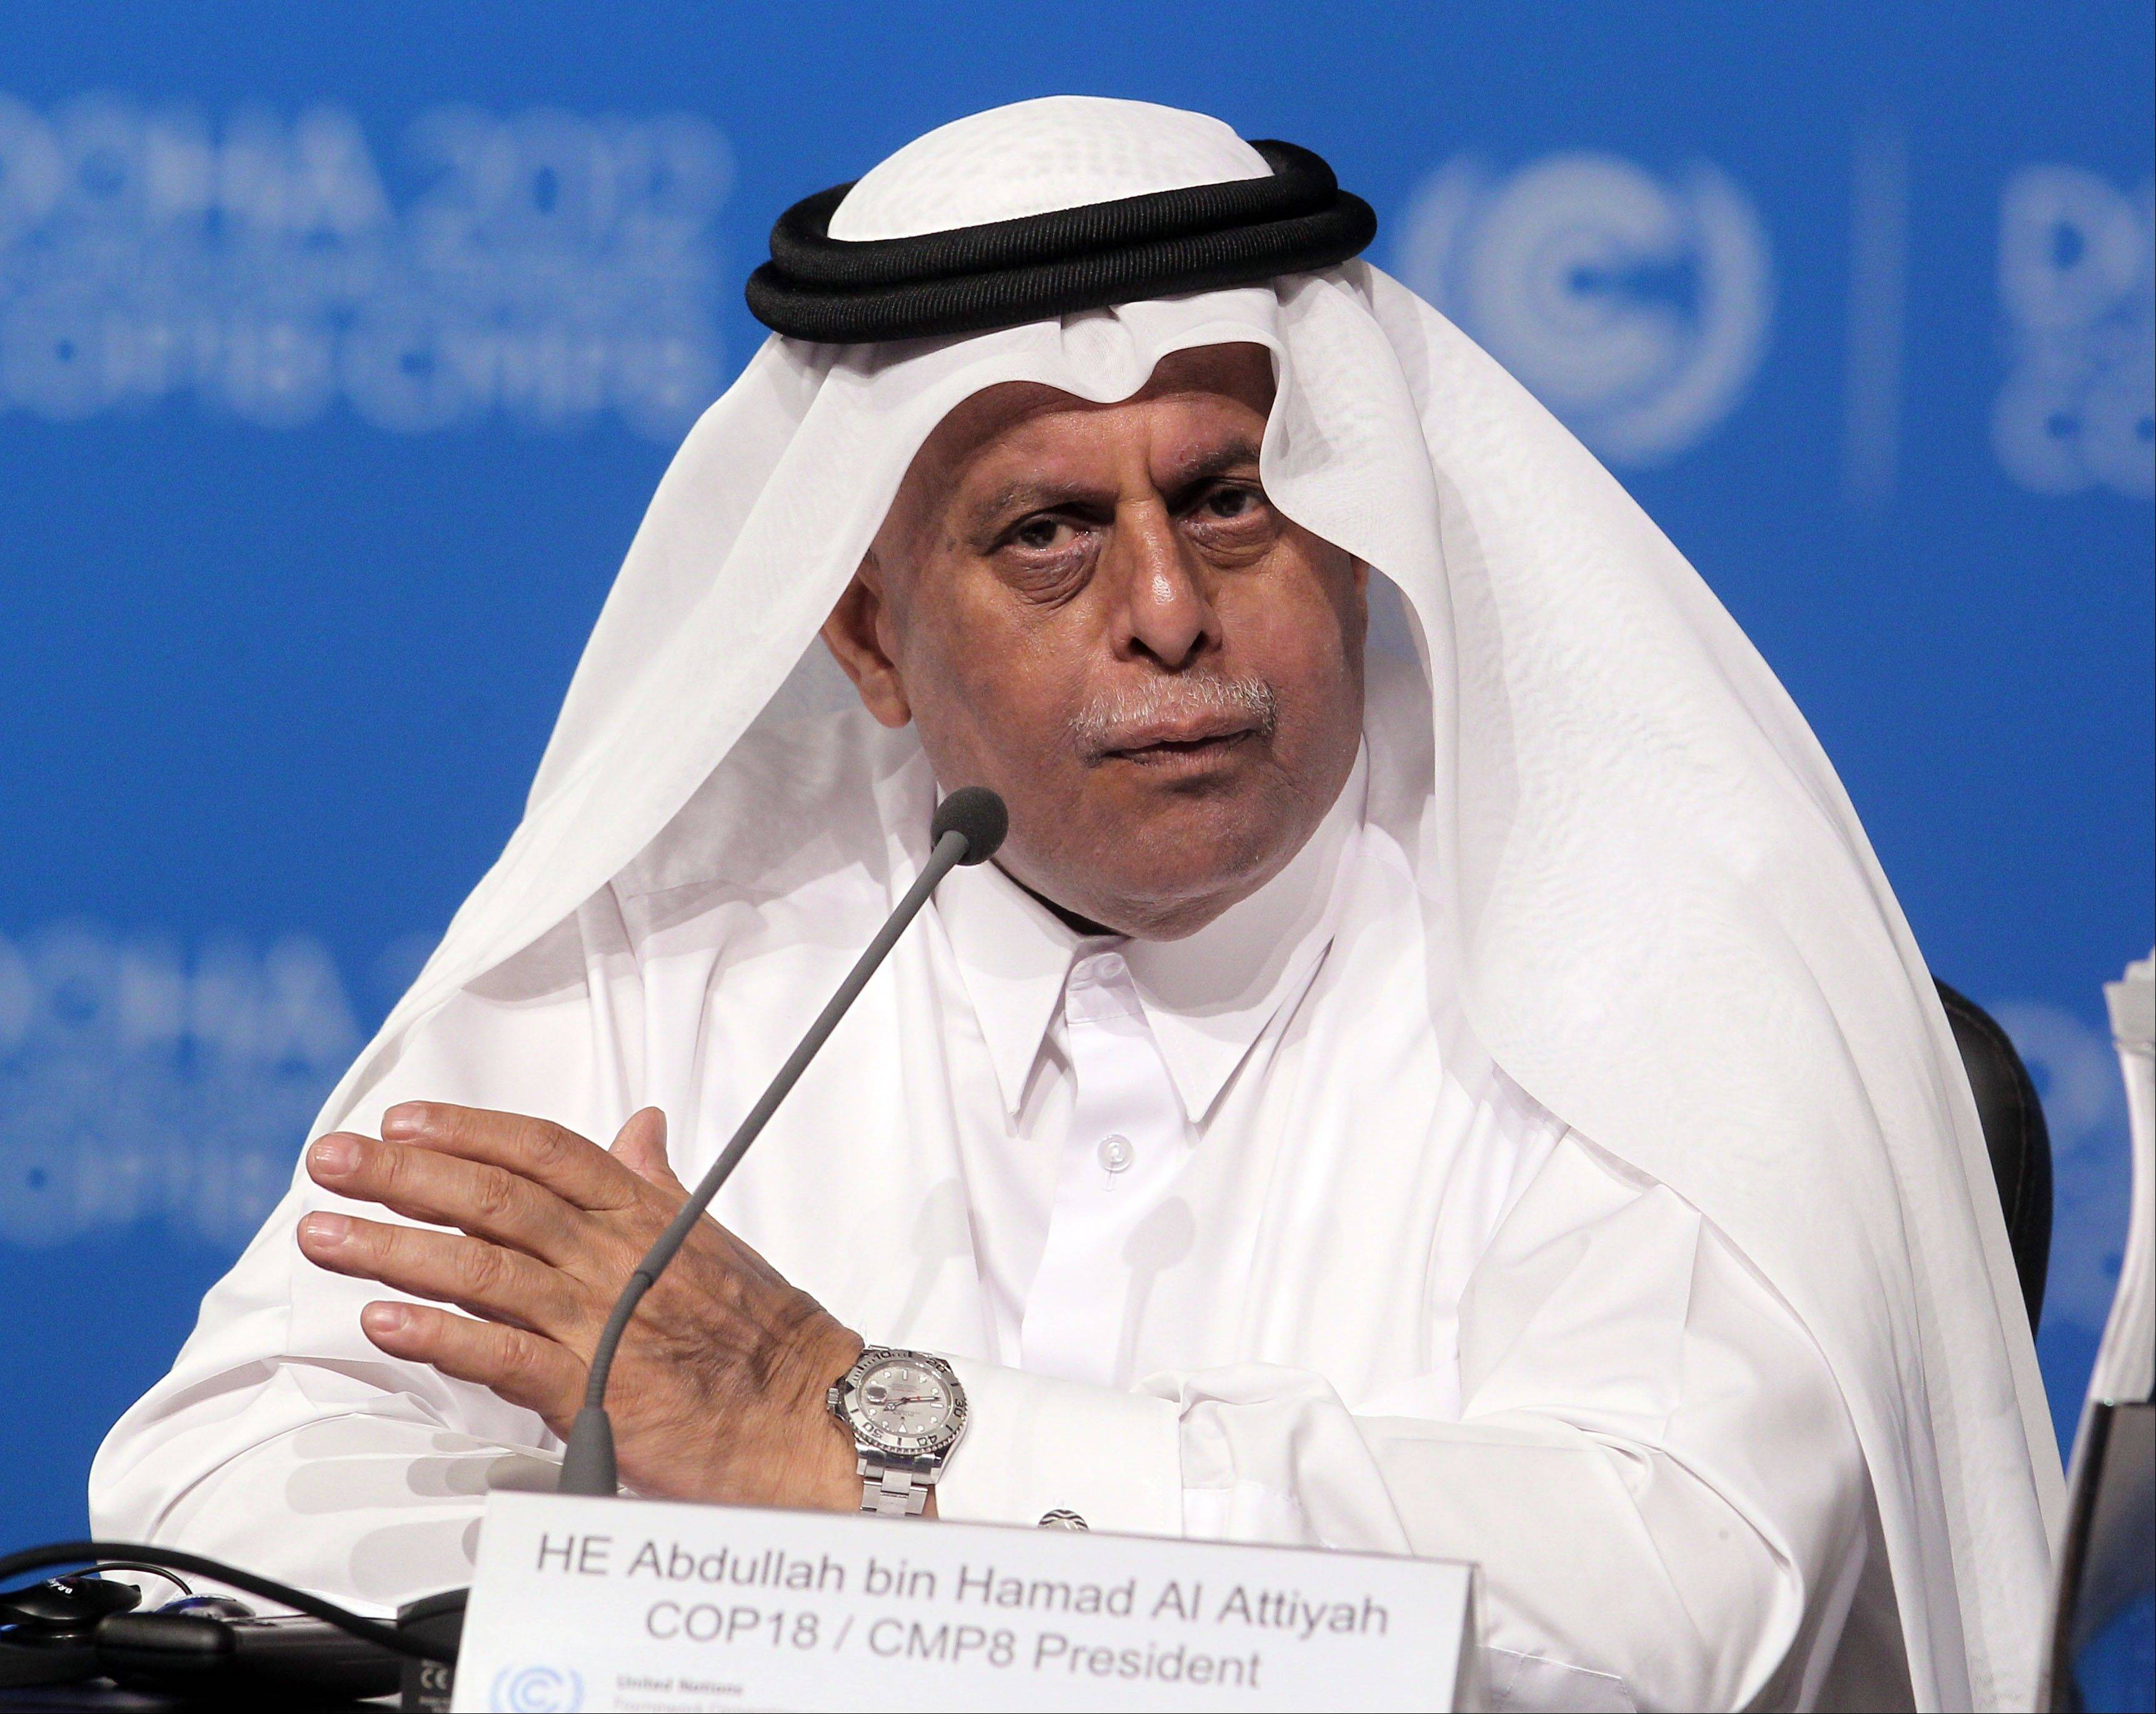 Qatar�s Deputy Prime Minister Abdullah bin Hamad al-Attiyah speaks at the opening session of the United Nations Climate Change conference in Doha, Qatar, Monday, Nov. 26, 2012. U.N. talks on a new climate pact resumed Monday in oil and gas-rich Qatar, where negotiators from nearly 200 countries will discuss fighting global warming and helping poor nations adapt to it.